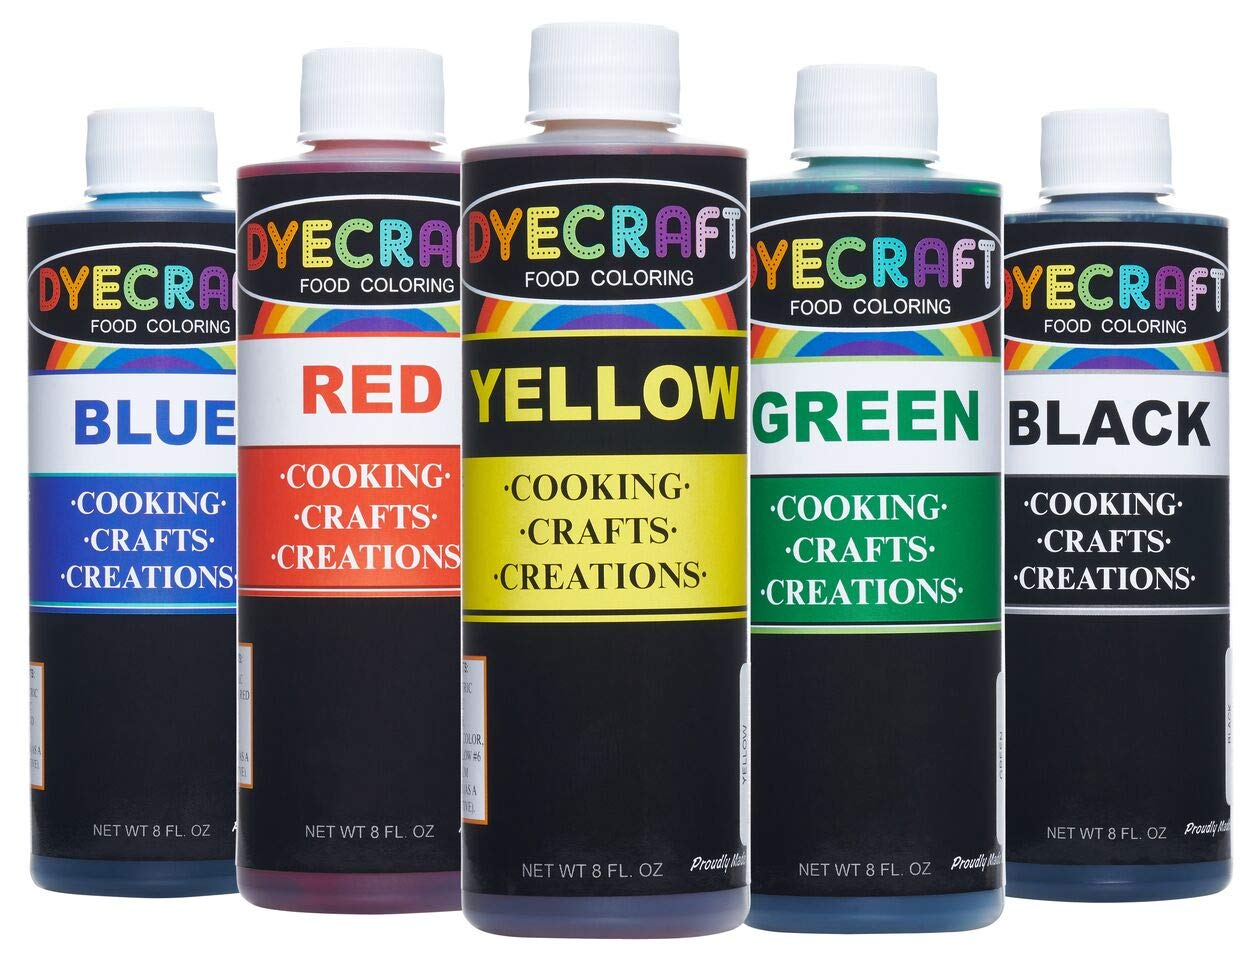 Food Coloring Multi-Pack (Green, Yellow, Blue, Red, Black) LARGE 4oz BOTTLES- Odorless, Tasteless, Edible- Perfect for Baking, Cooking, Arts & Crafts, Decorations and more by DyeCraft (Image #1)